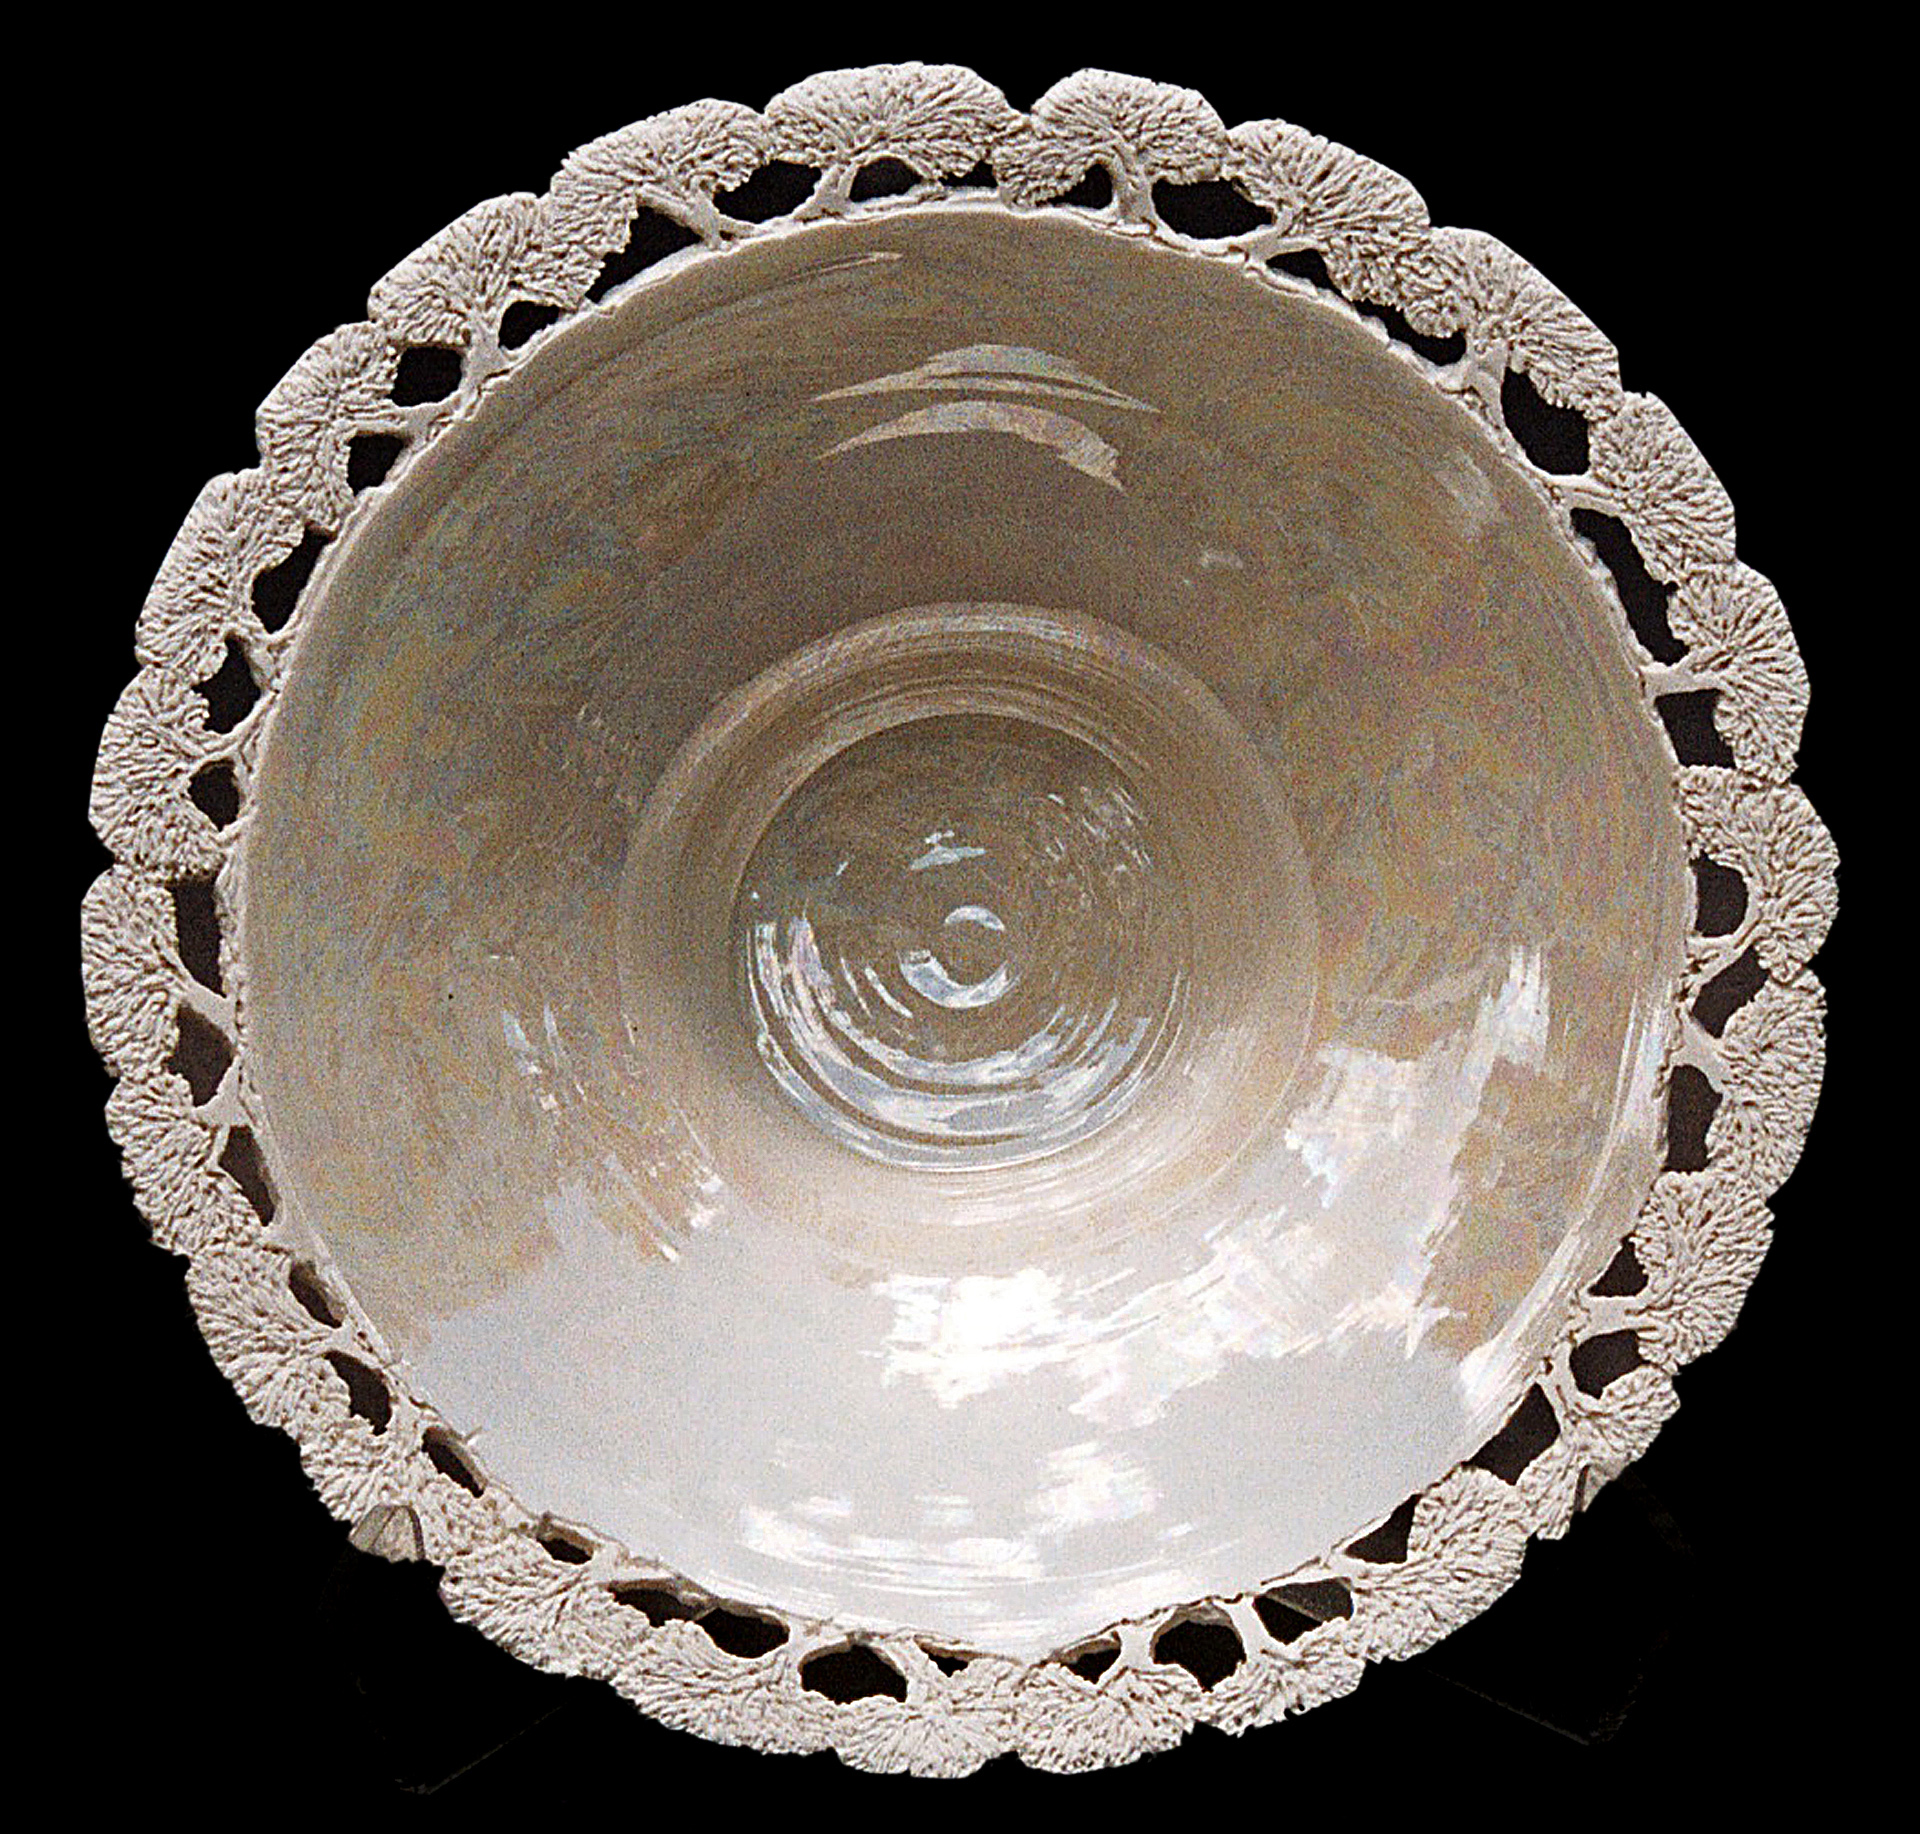 Peters _Flaring Bowl with rim of trees_posrer.jpg